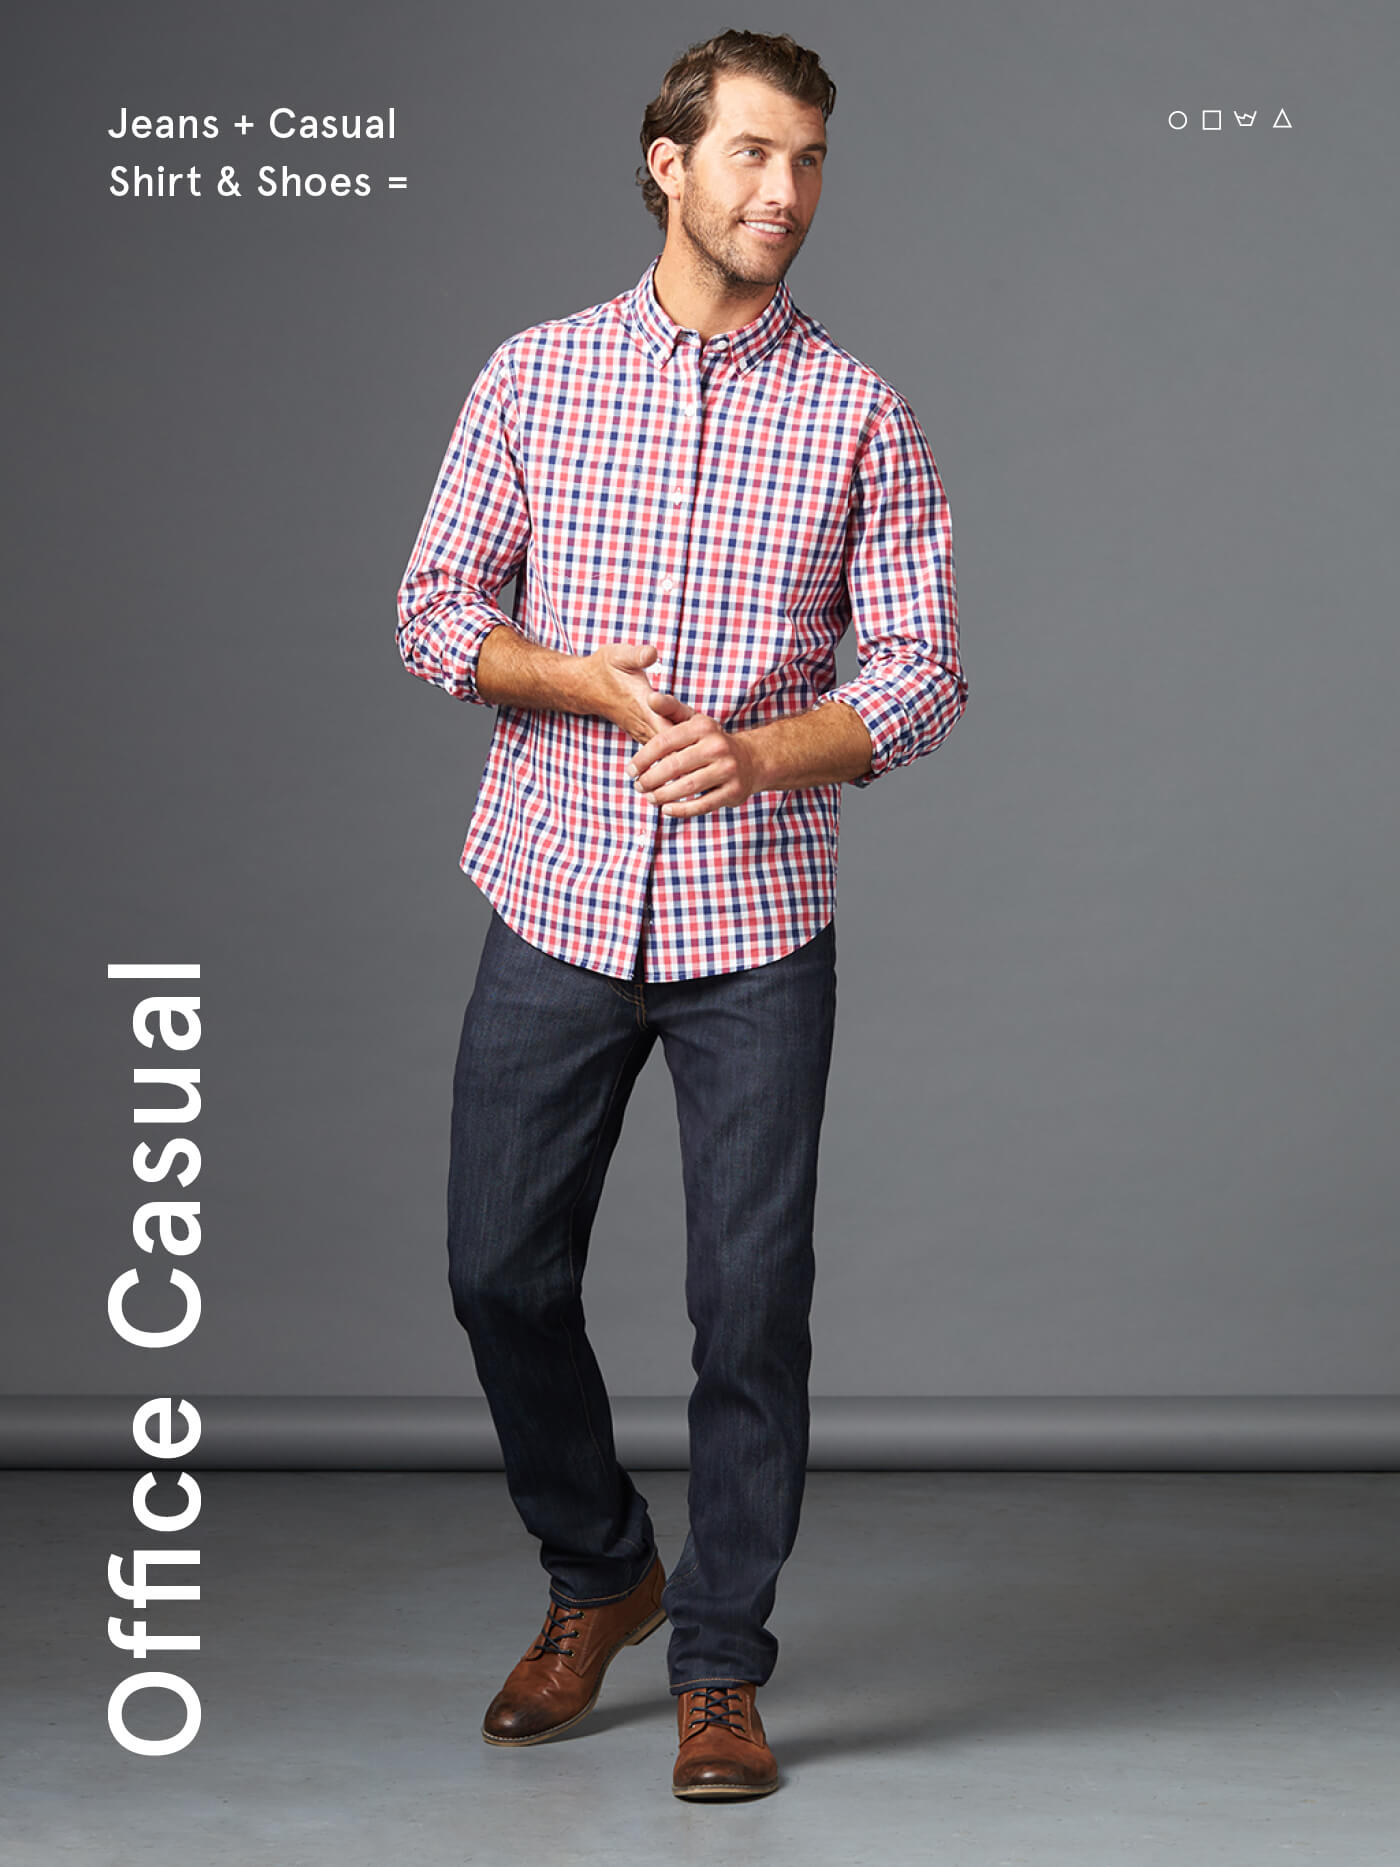 9decb62a69 what is office casual  jeans with a casual button down shirt and dress shoes